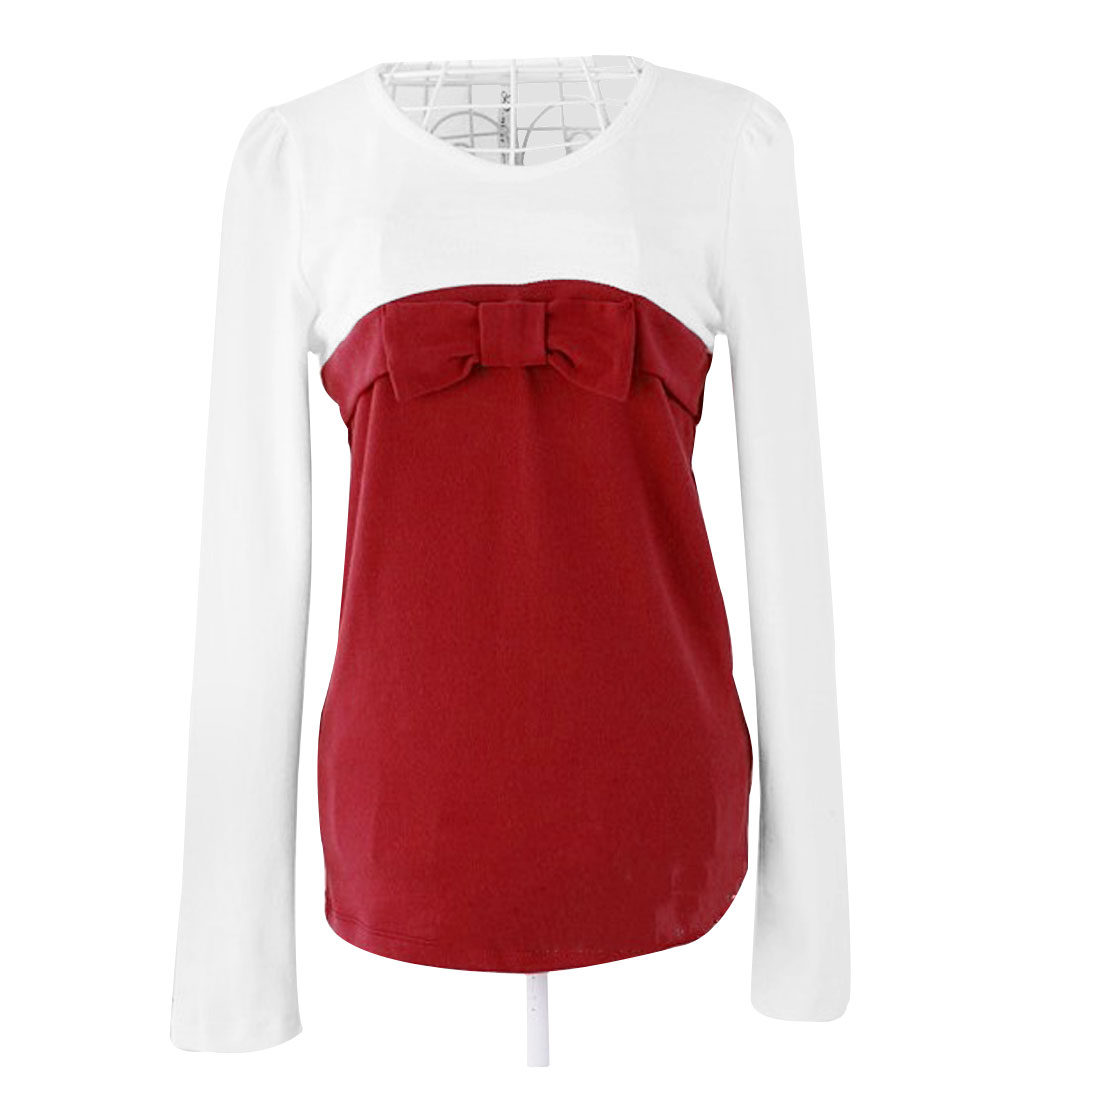 XS Round Neck Long Sleeves Pullover Casual Shirt White Red for Lady